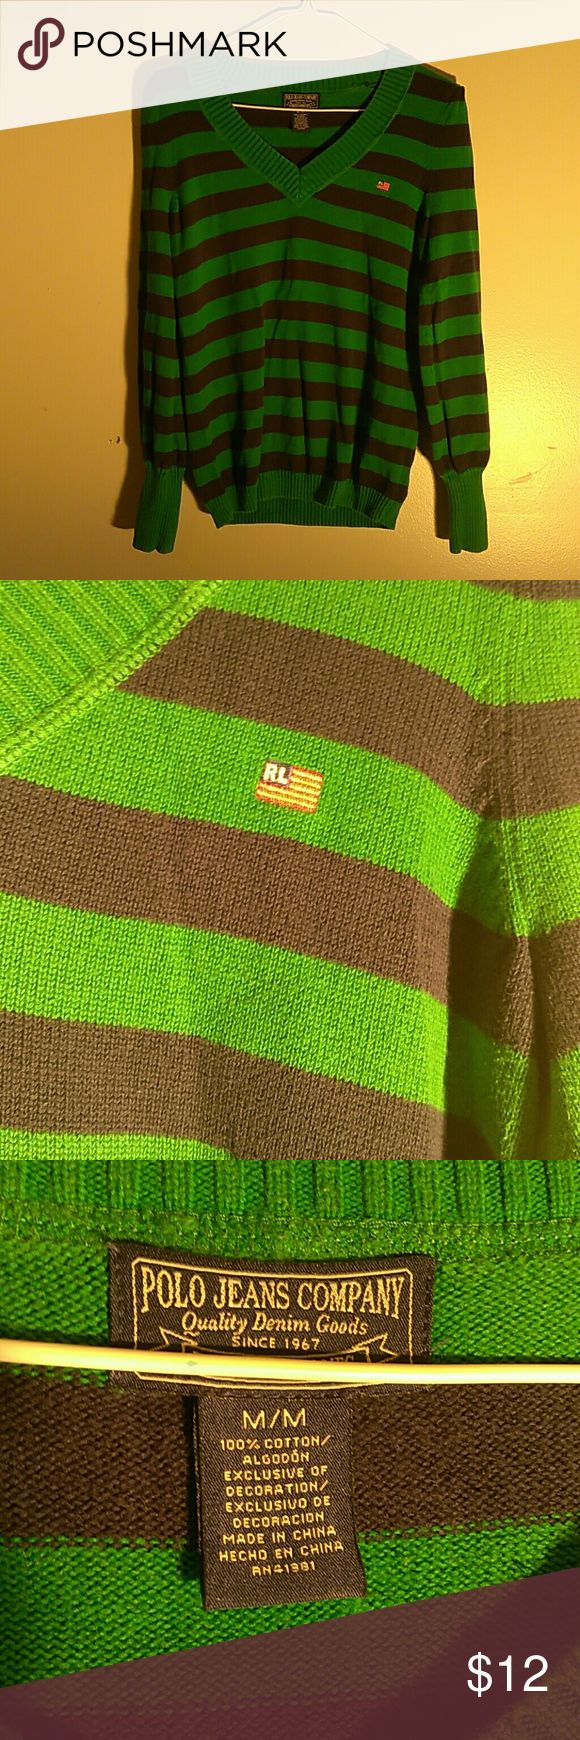 Polo jeans company sweater Polo jeans company sweater in good condition size medium green and blue Ralph Lauren  Sweaters V-Necks